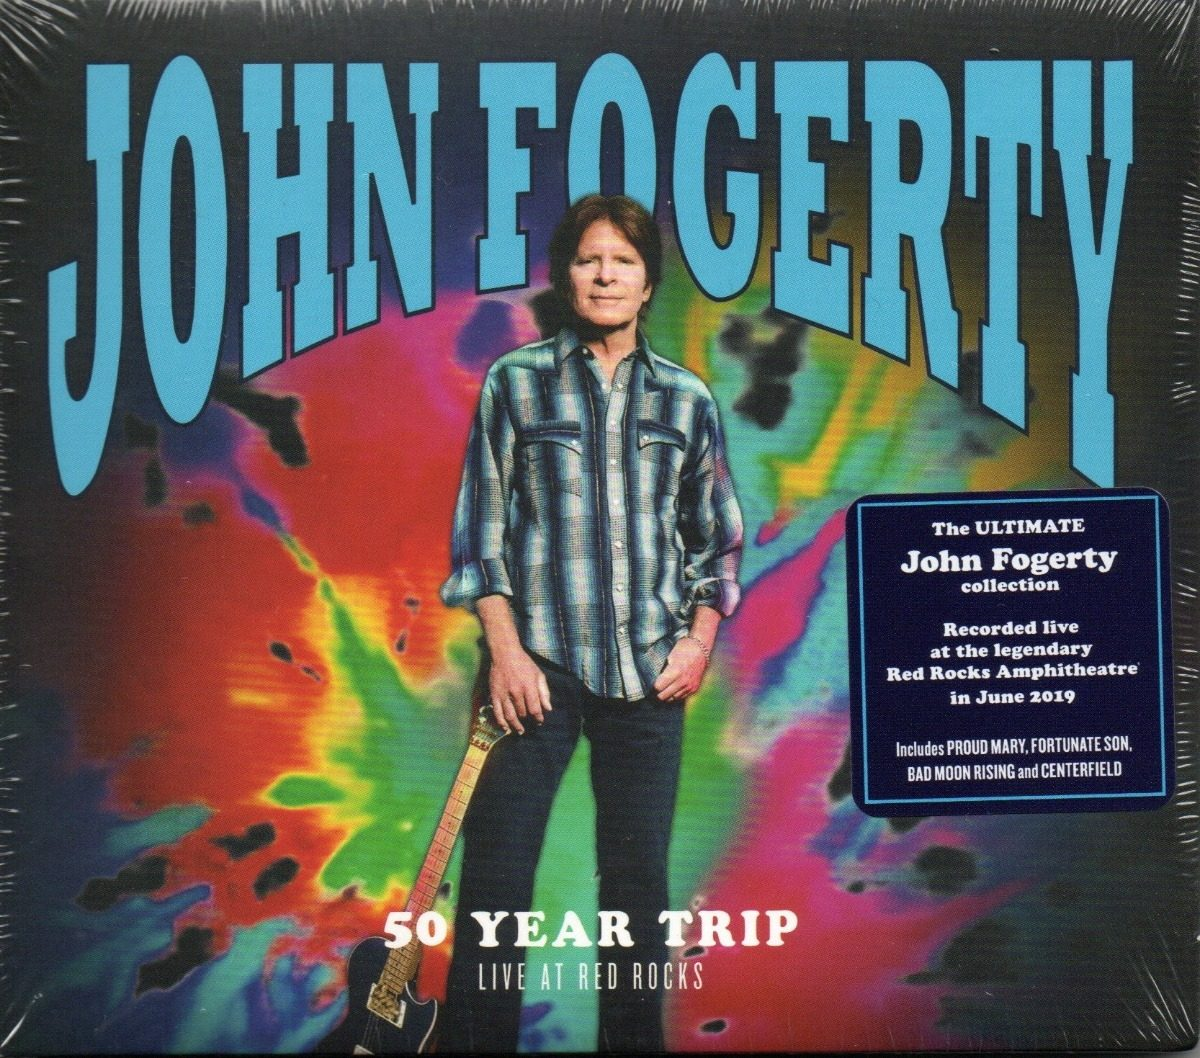 THIS TOWN ROCKS! Agenda de Conciertos - Página 42 John-fogerty-live-2019-sellado-us-revival-the-beatles-ciudad-D_NQ_NP_667159-MPE32803525349_112019-F